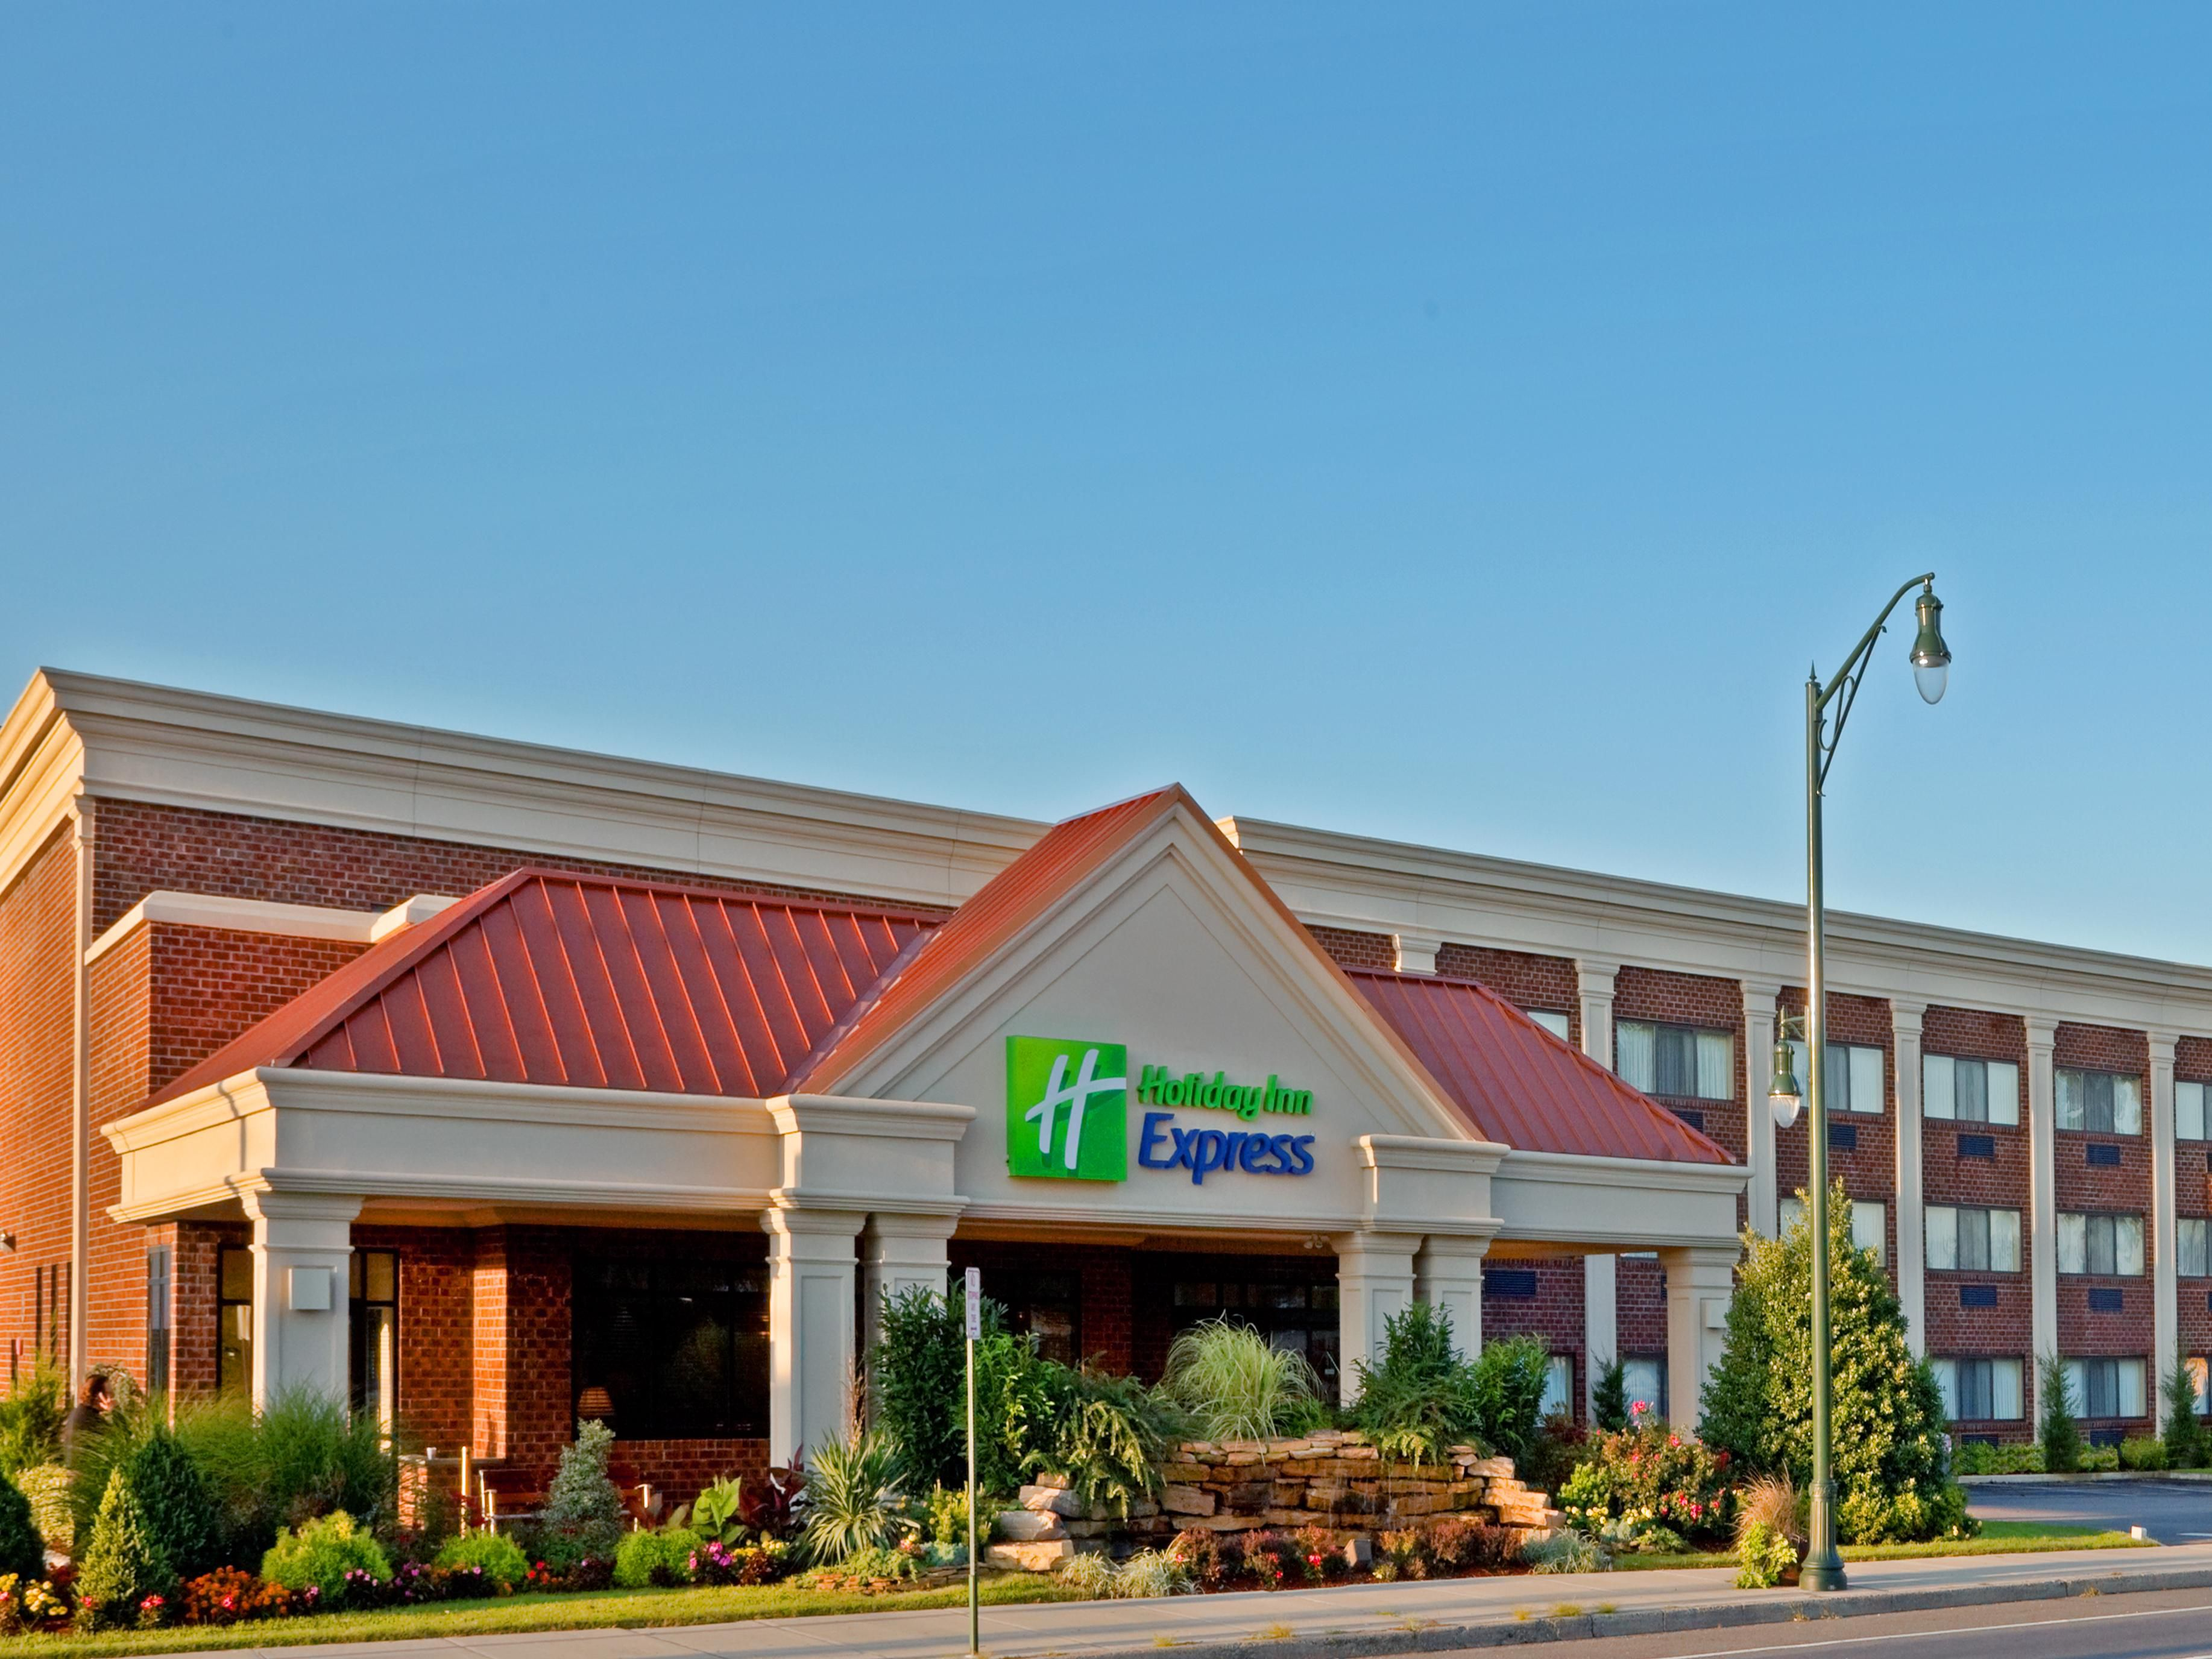 Welcome to the Holiday Inn Express!